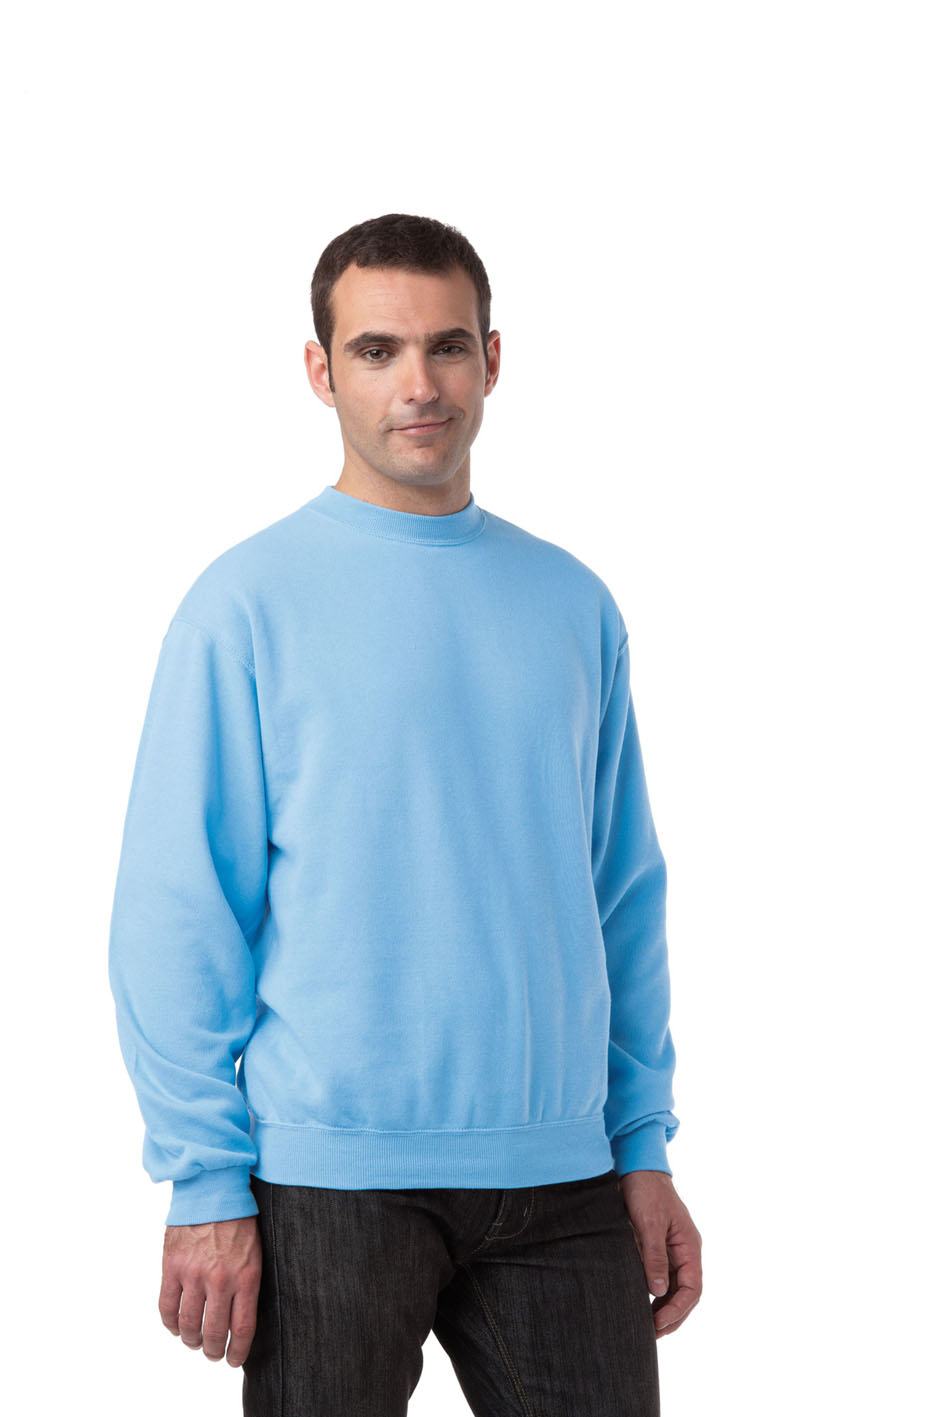 Russell Set-in Sleeve Sweatshirt RU262M foto 2